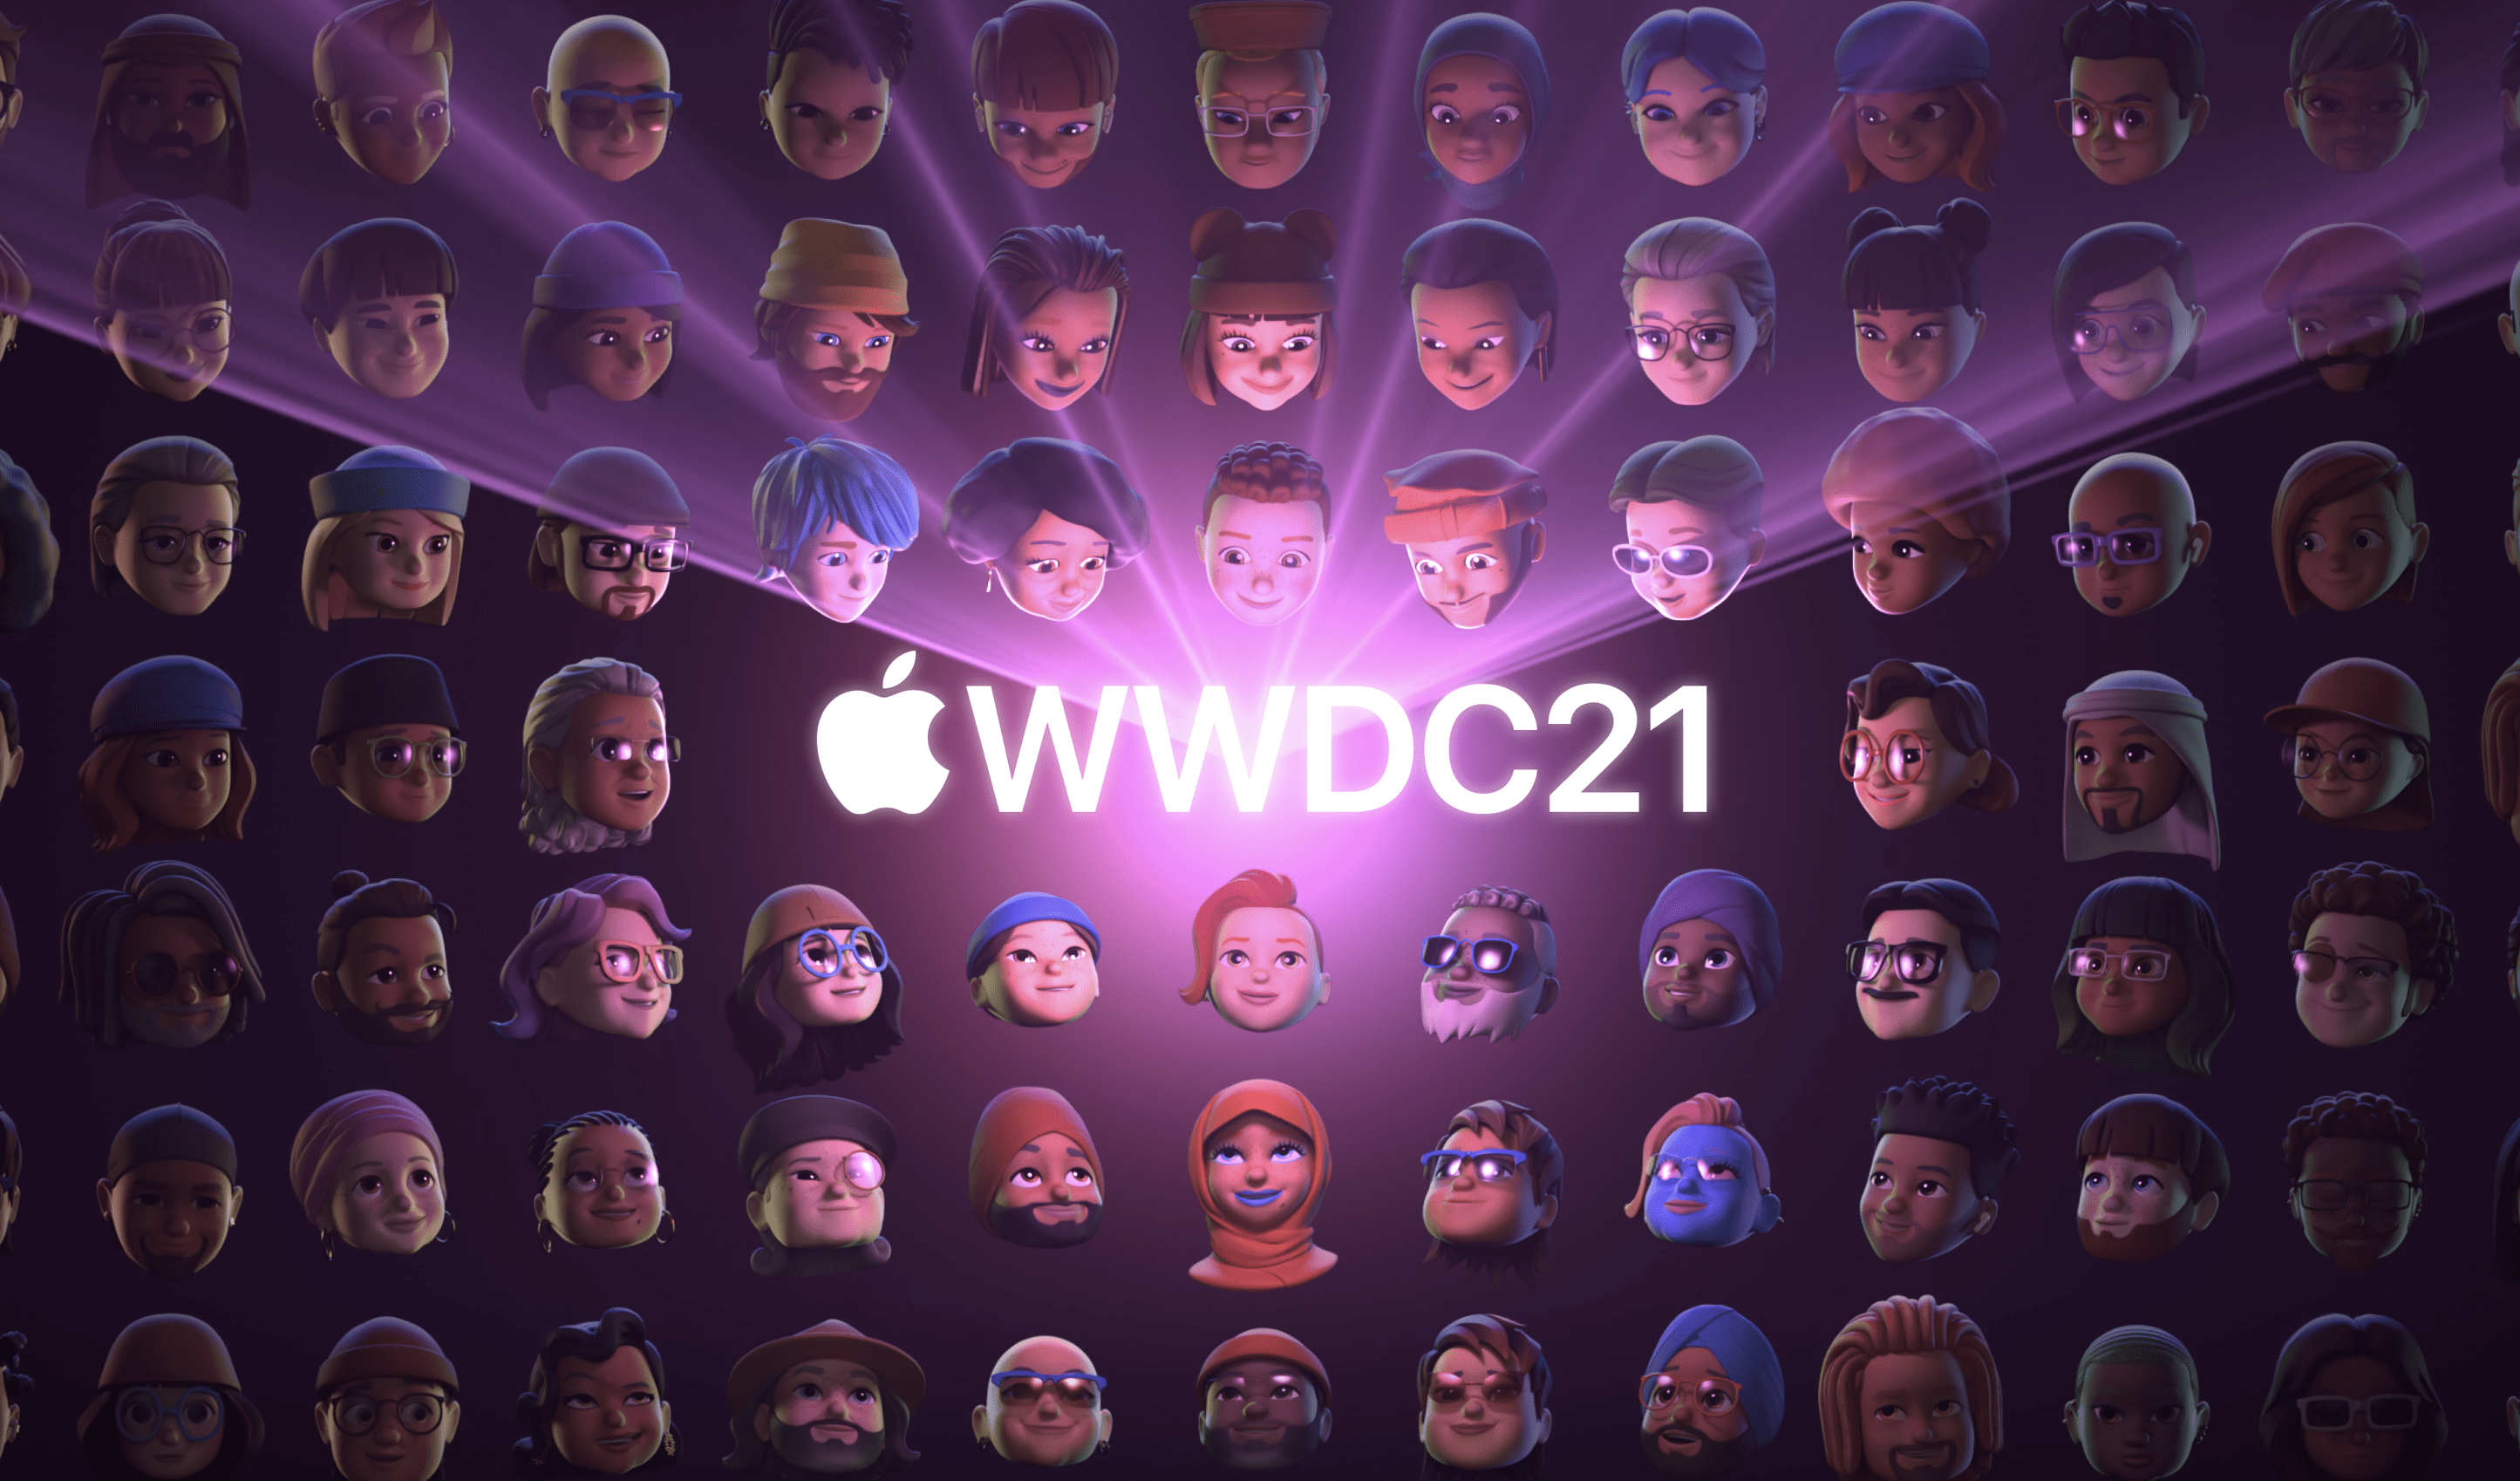 WWDC21 conference event image witth many different people and logo in center